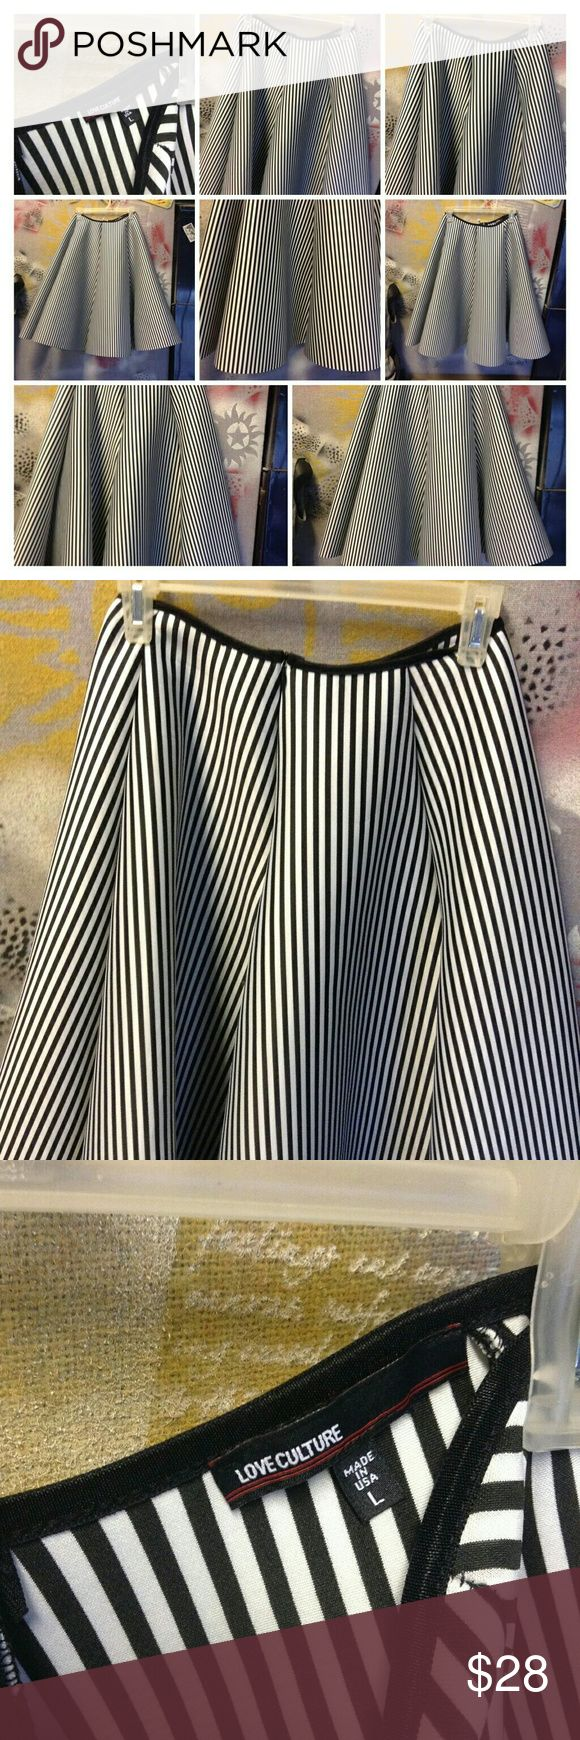 LOVE CULTURE  black & white pin stripped skirt M WOW! This skirt is amazing! Big flowing flare totally like 50's retro. Pair of Bobby socks and then black and white shoes my grandma wore when she was a kid.  Black and white pin stripped. Size M  95% polyester 5% SPANDEX made in USA Love Culture Skirts A-Line or Full